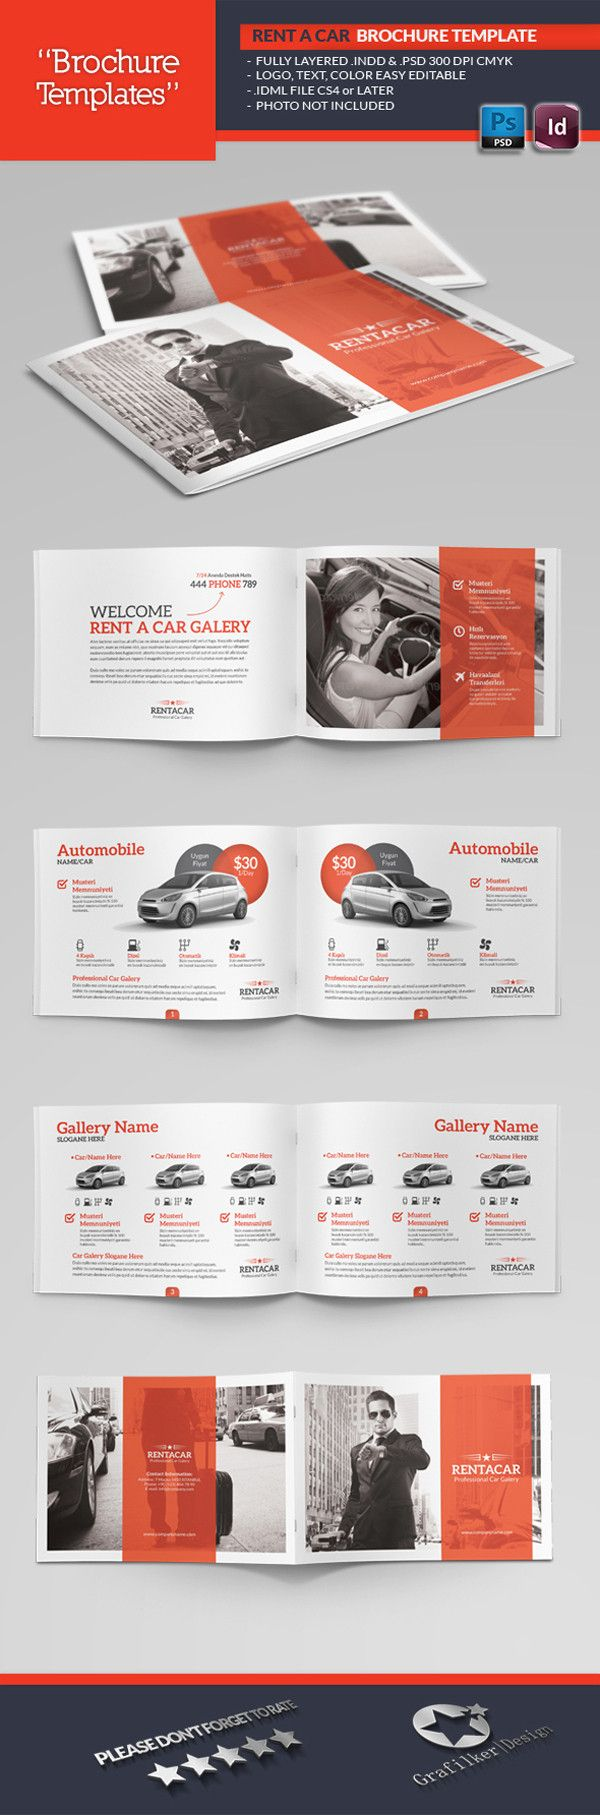 17 best images about marketing strategies on pinterest for Marketing brochures templates